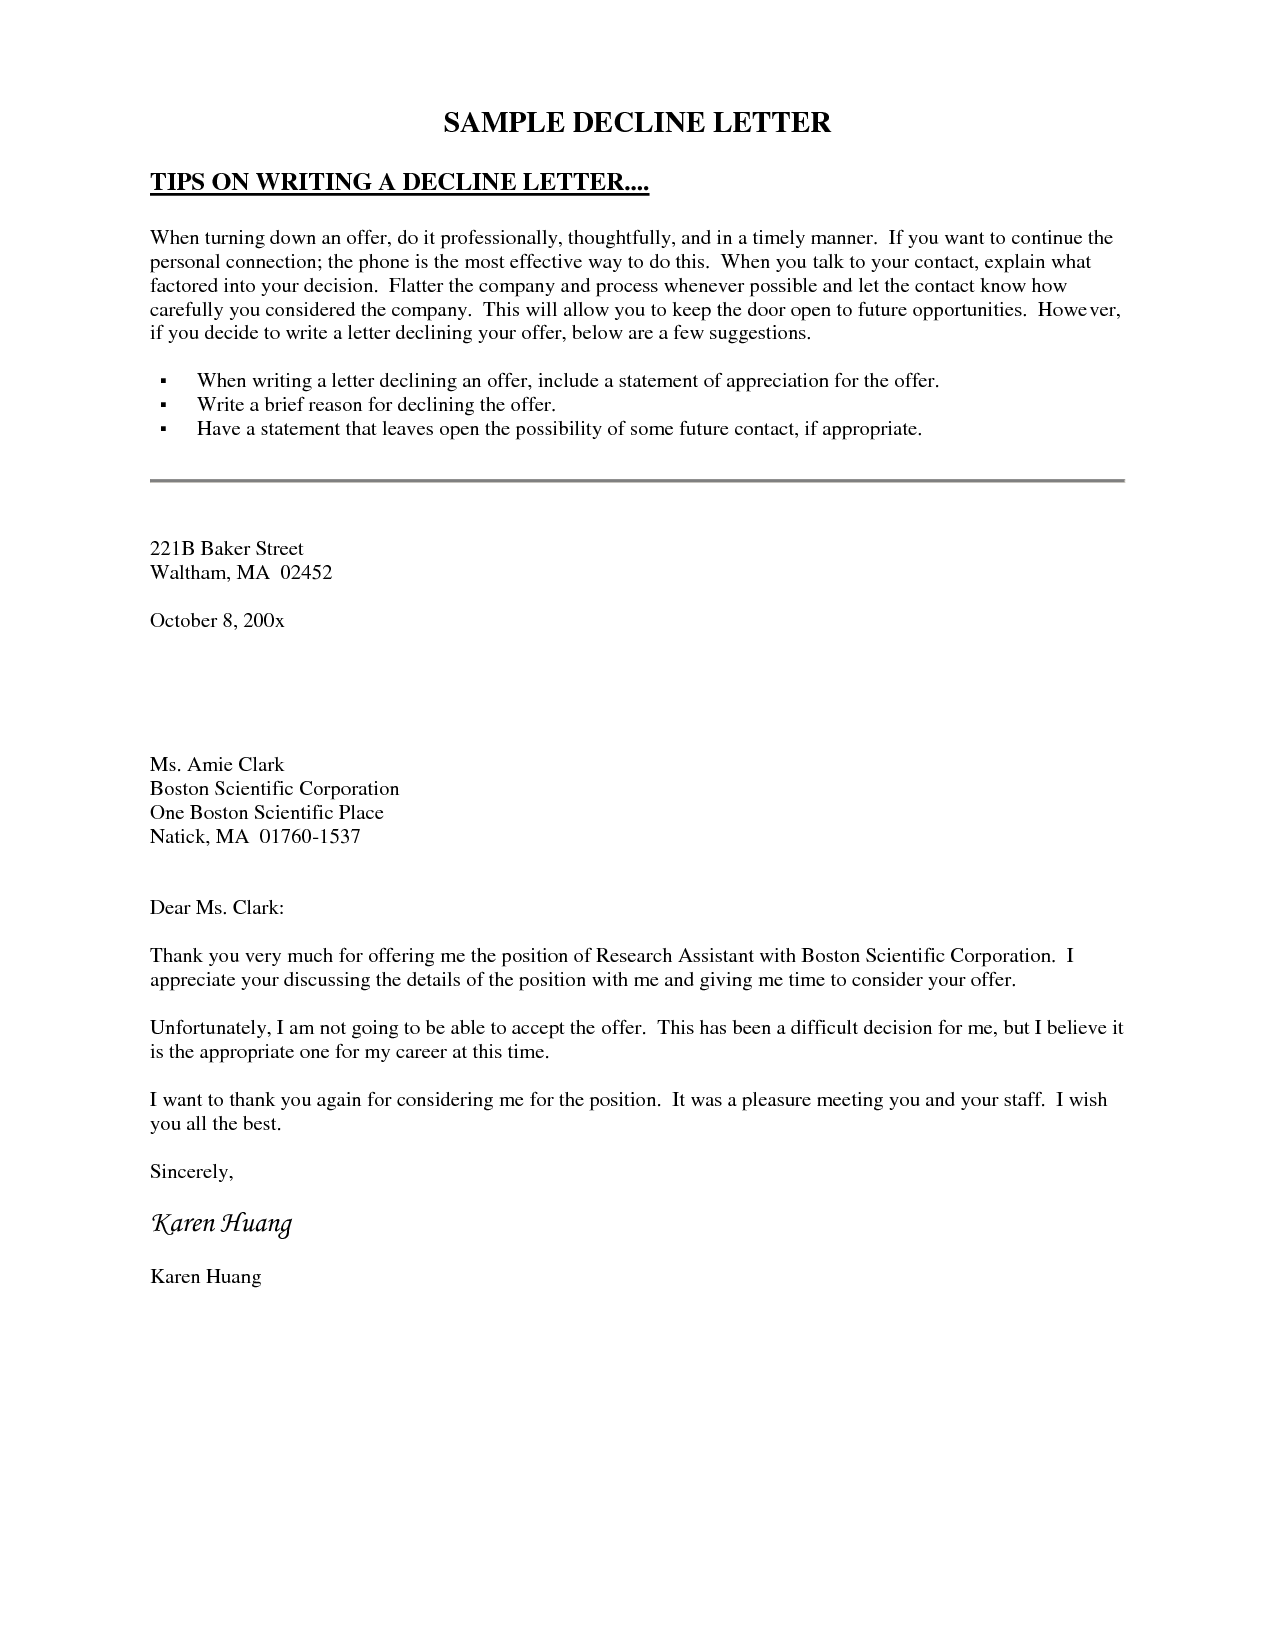 Decline invitation letter this letter template declines an decline invitation letter this letter template declines an invitation to serve on an organizations board of directors due to other commitments stopboris Gallery